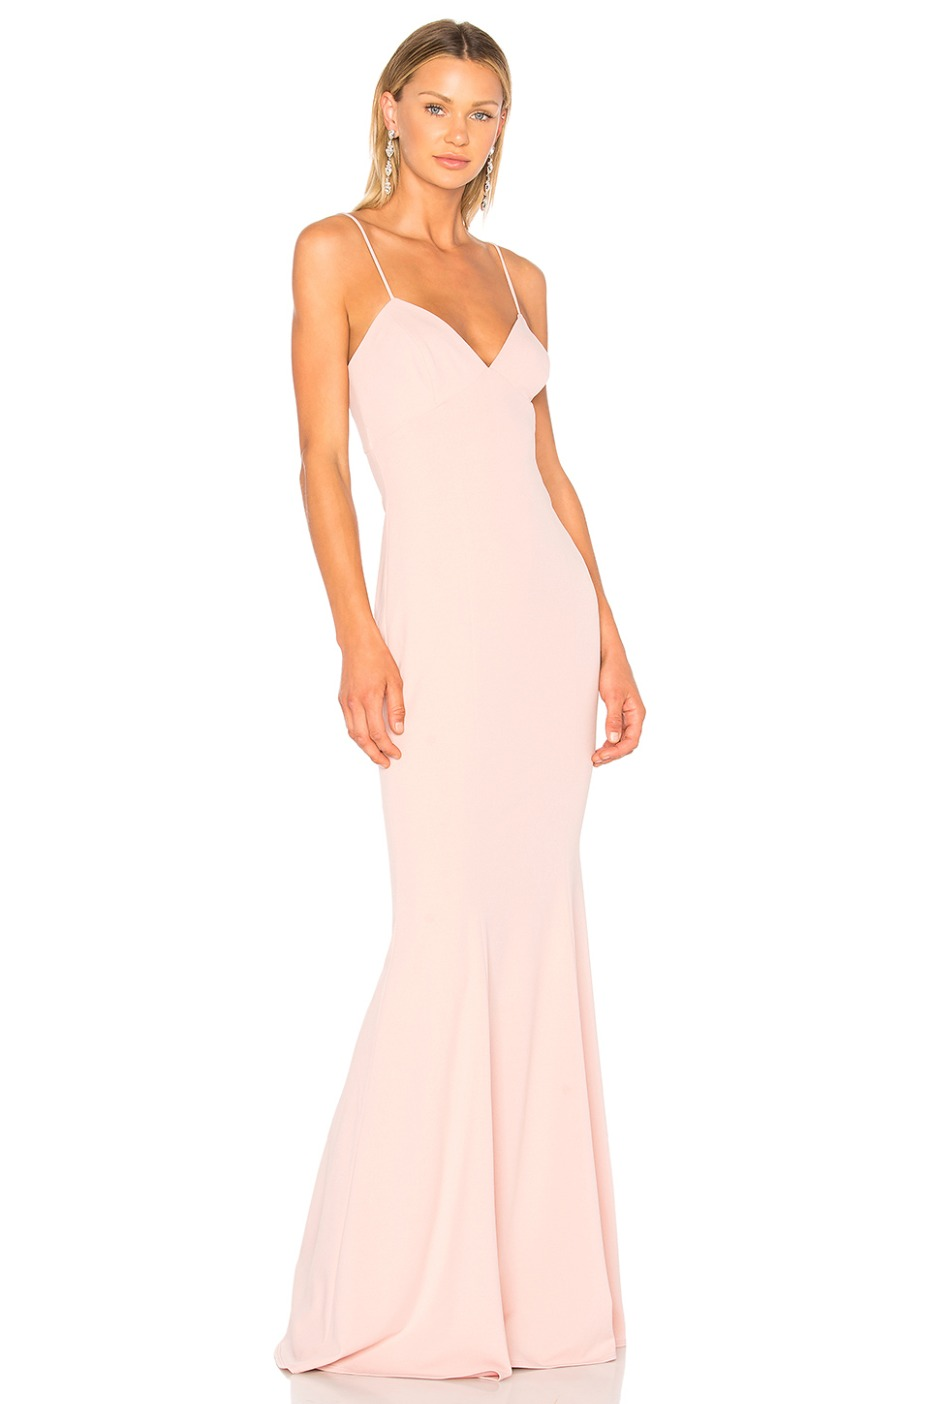 katie-may-luna-gown-in-dusty-rose